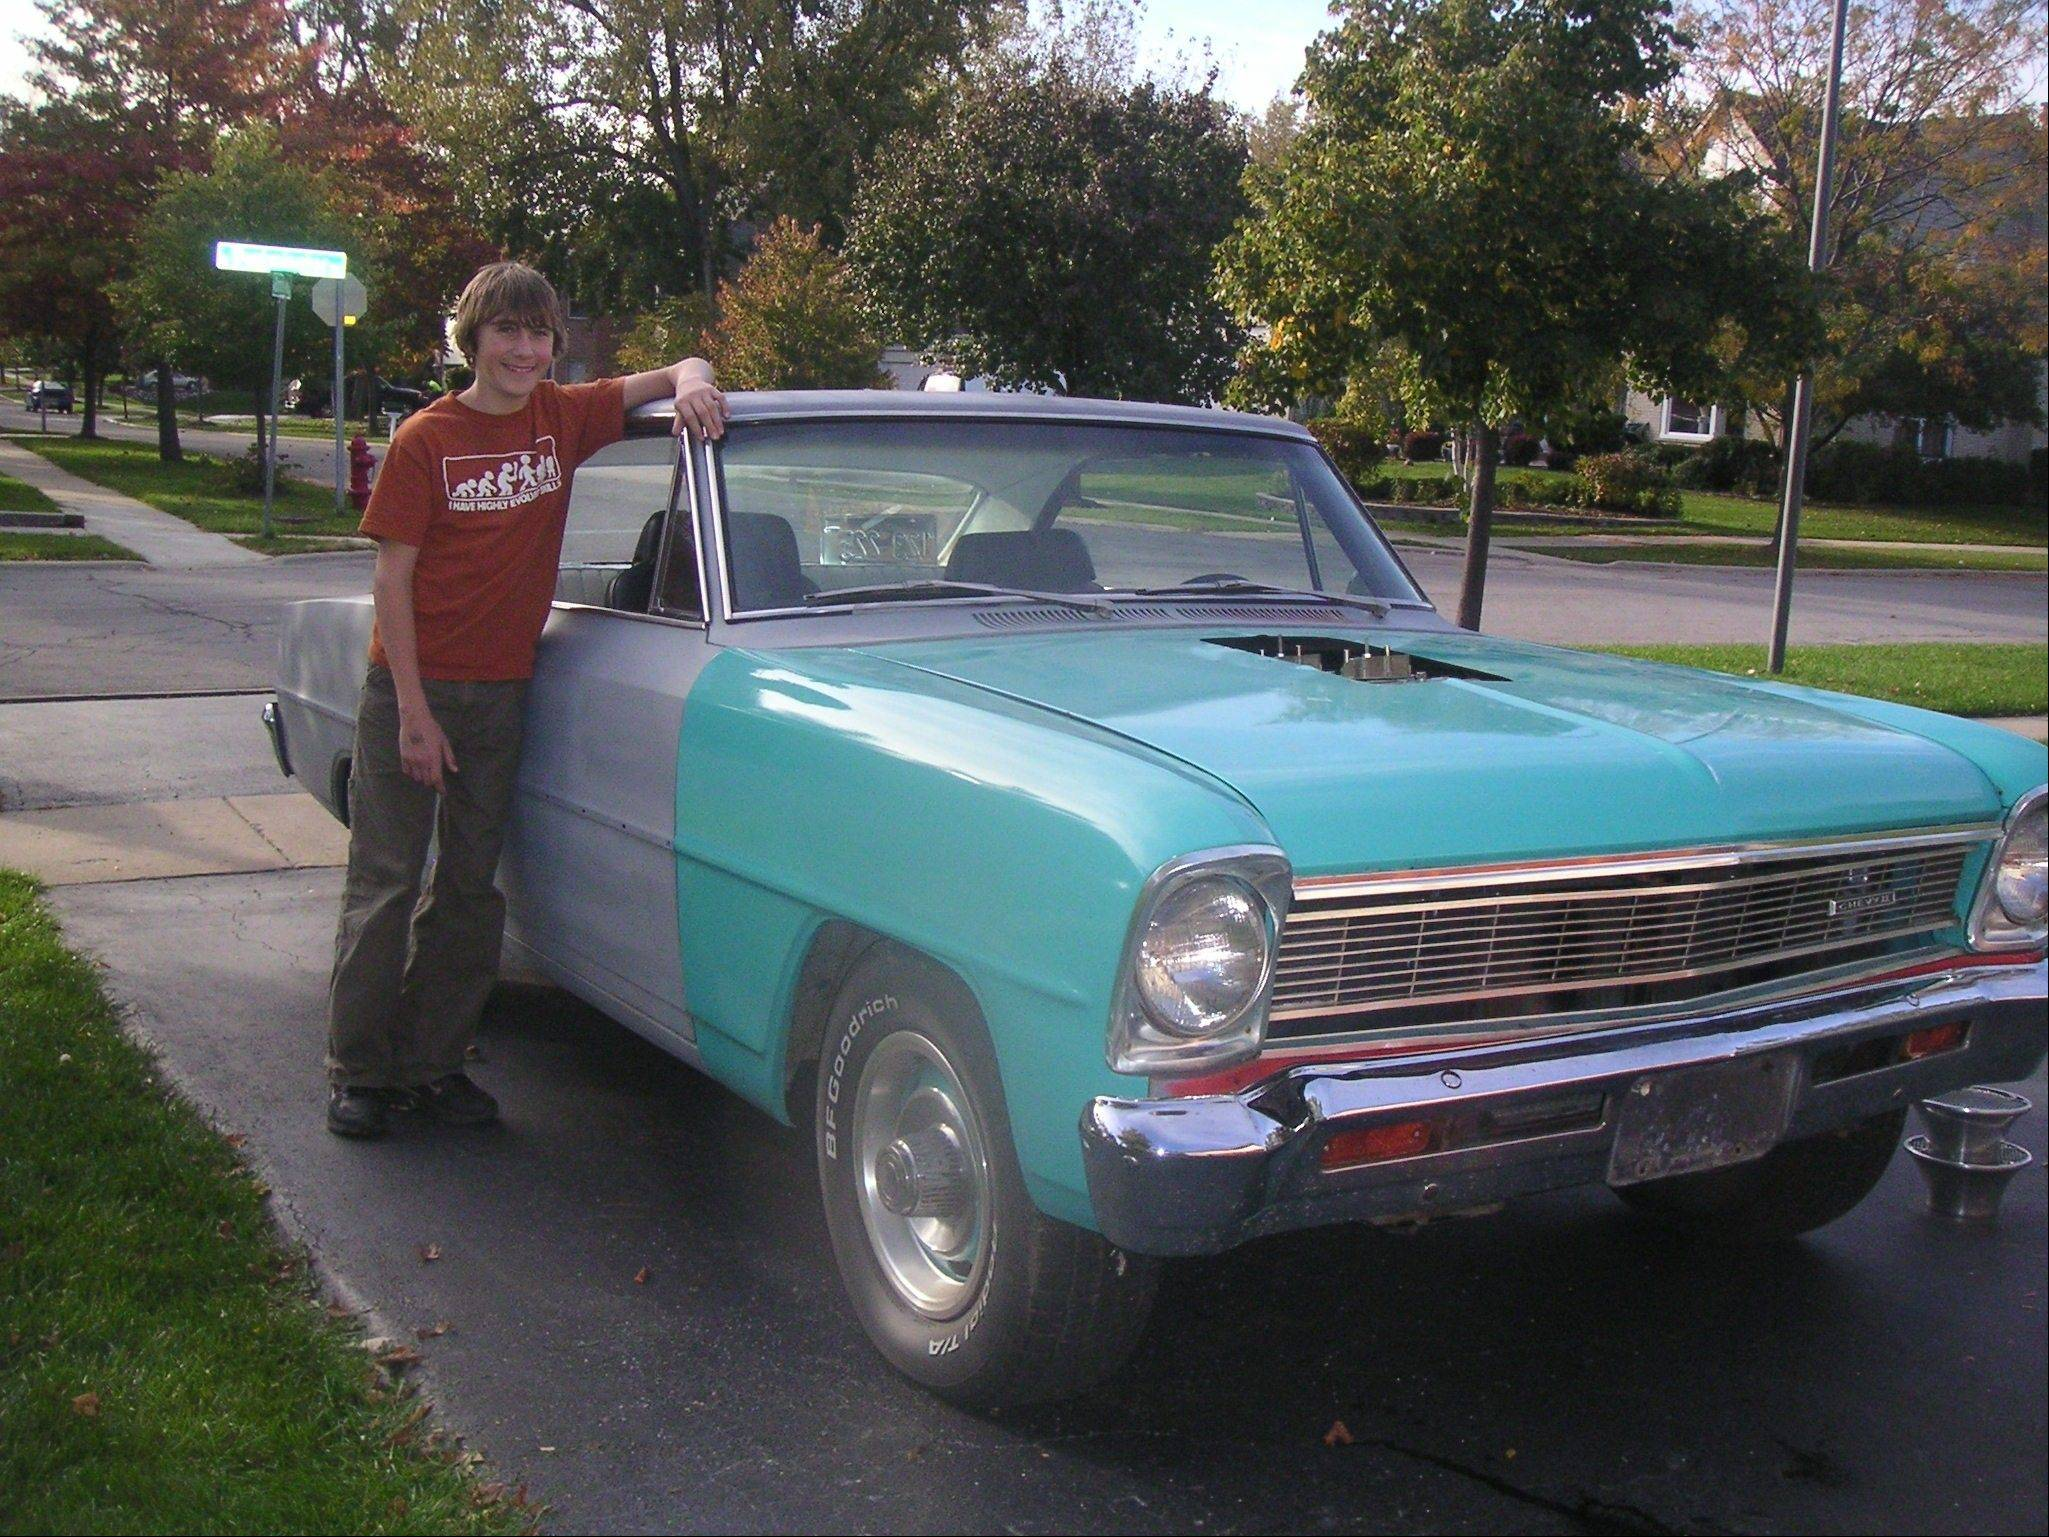 Tyler Dziedzina admires the Nova shortly after it was brought home in 2006.